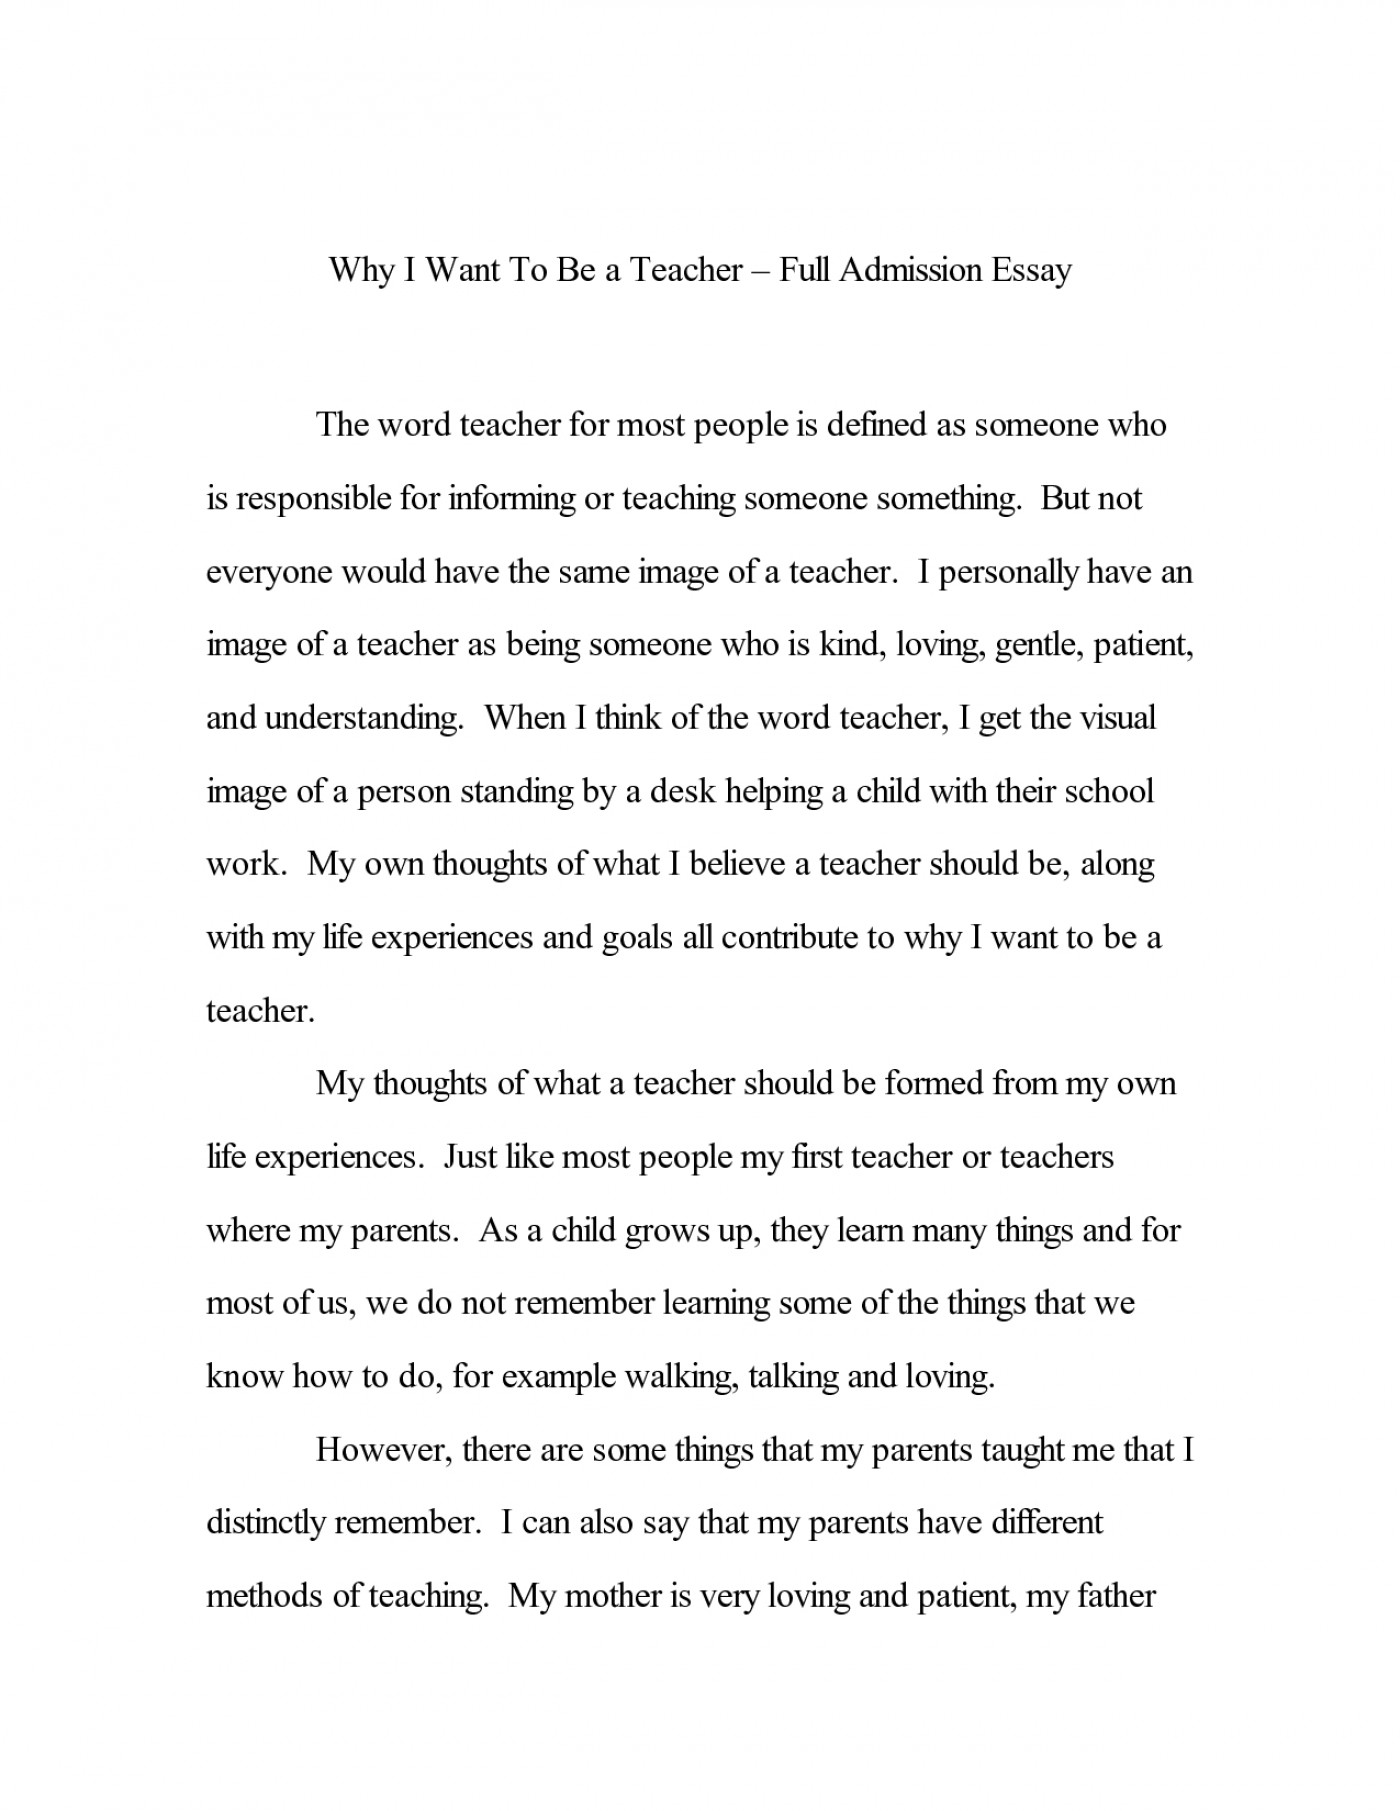 005 College Application Essay Example Writings And Essays What Is Personal For Ideal Vistalist Co I You The Format Topic Prompt Excellent Help Examples 500 Words Writing Workshop Pdf 1400